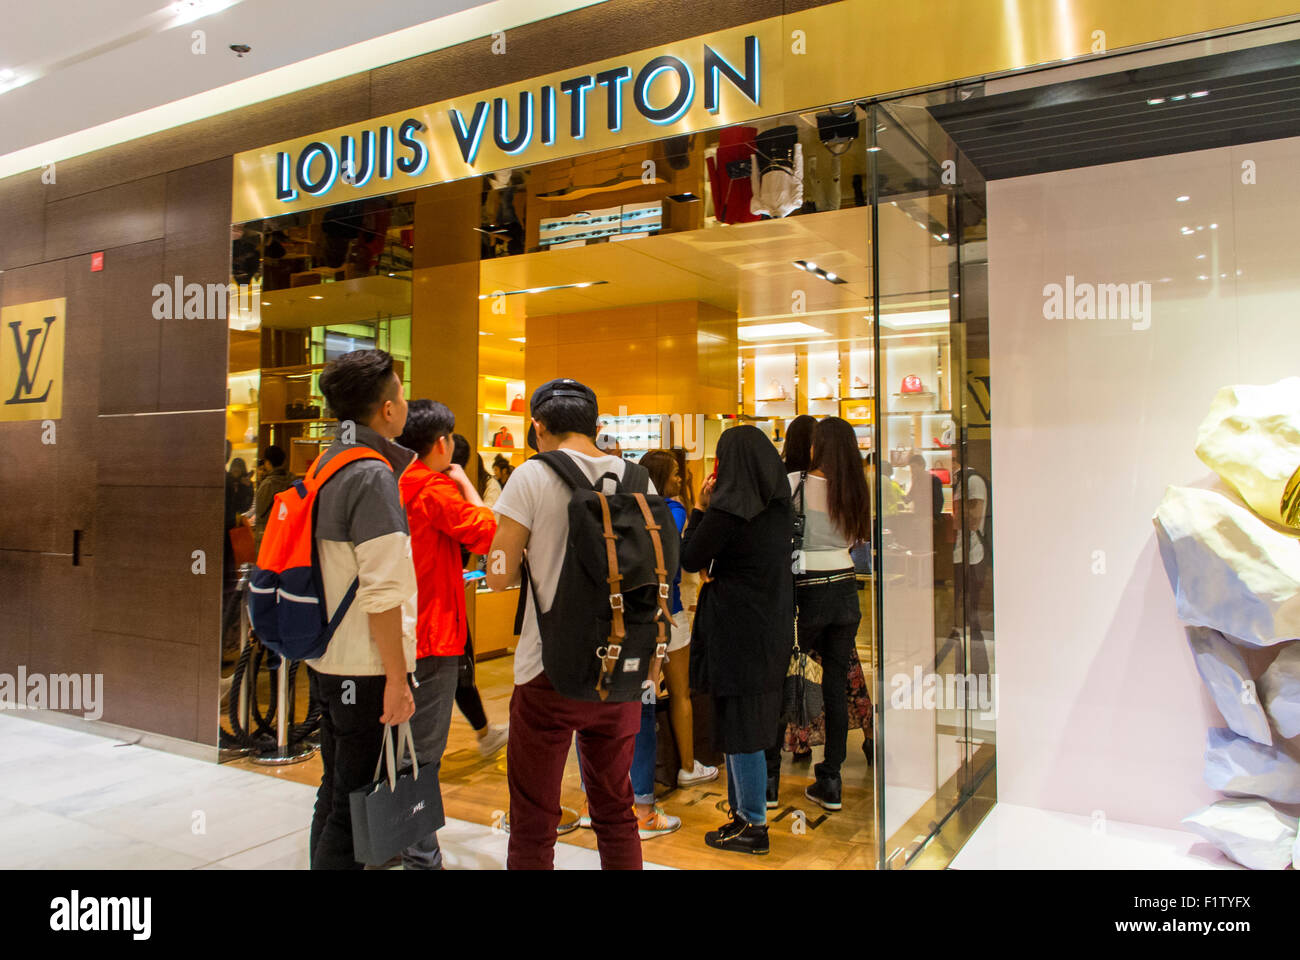 2019 year style- Luxury stocks look up to LVMH: the French group sets an upbeat tone for the industry